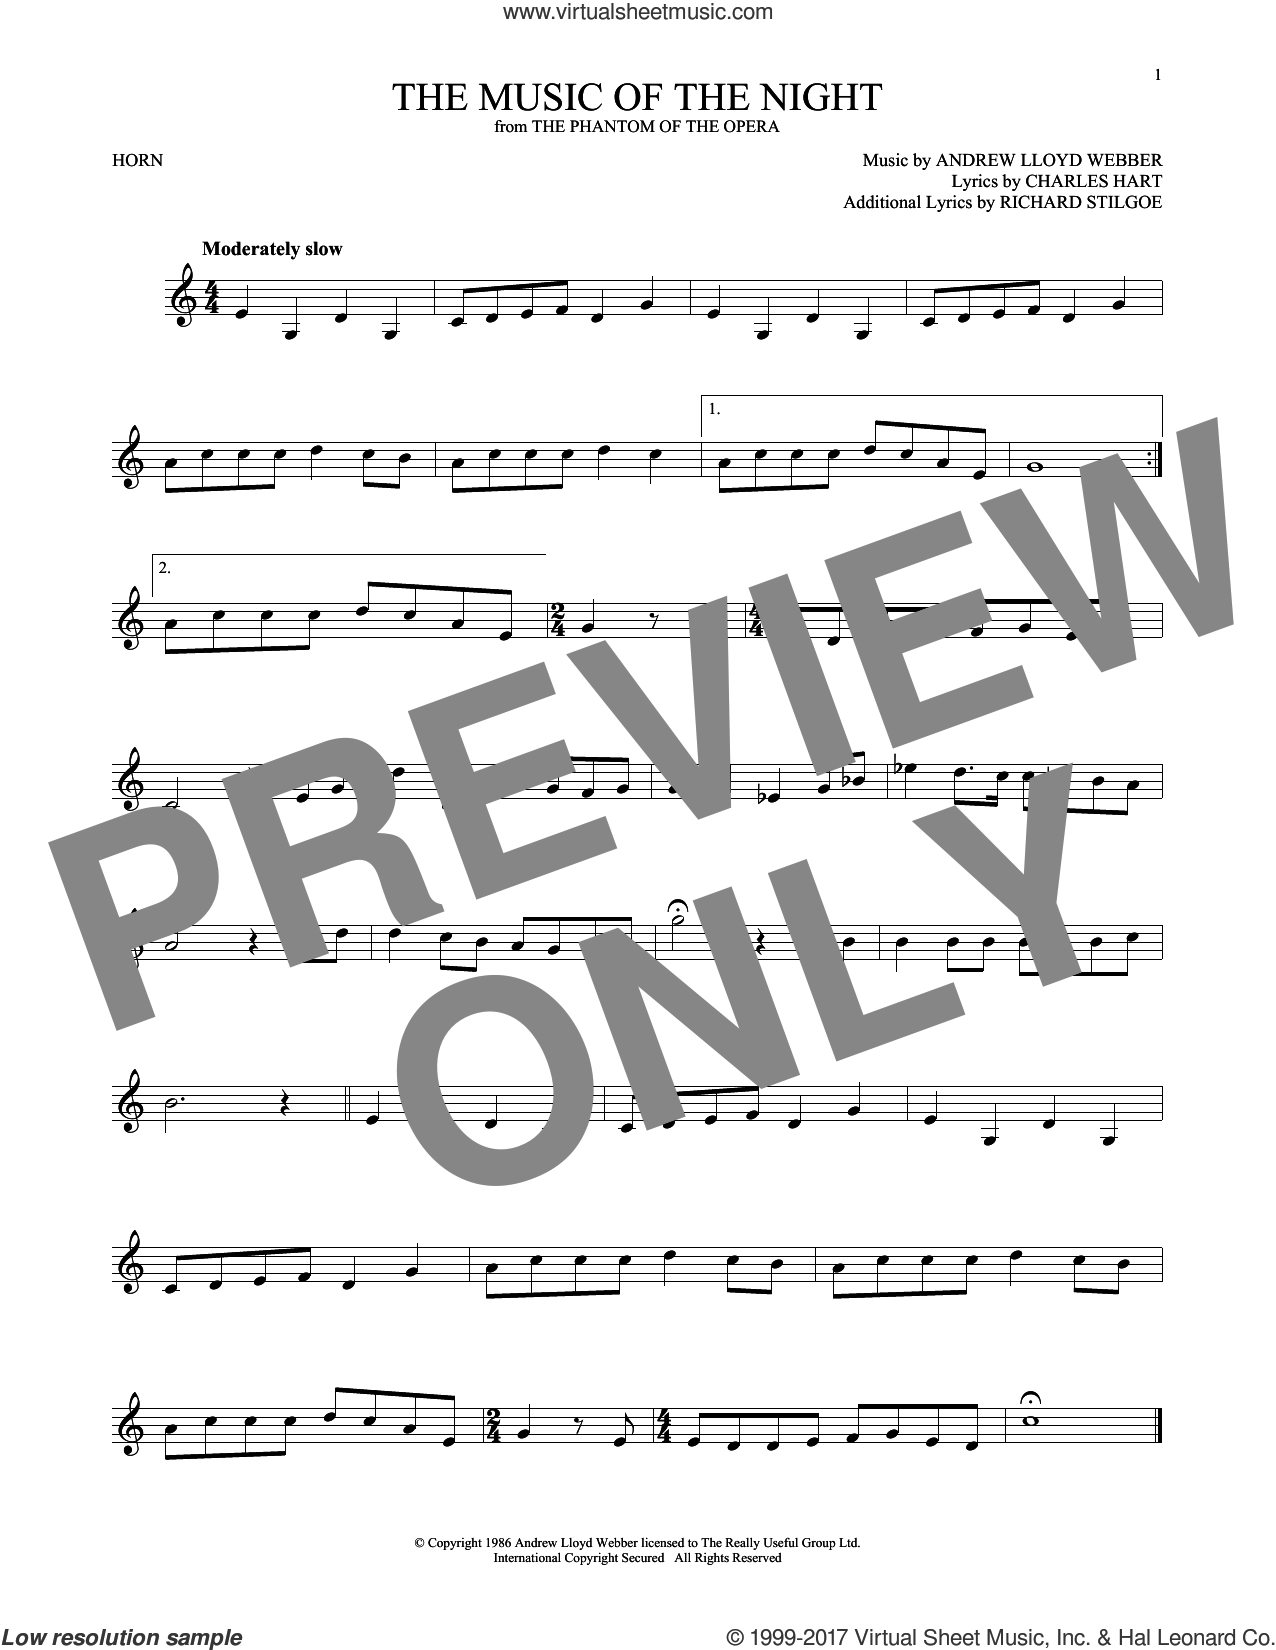 The Music Of The Night sheet music for horn solo by Andrew Lloyd Webber, David Cook, Charles Hart and Richard Stilgoe, intermediate skill level